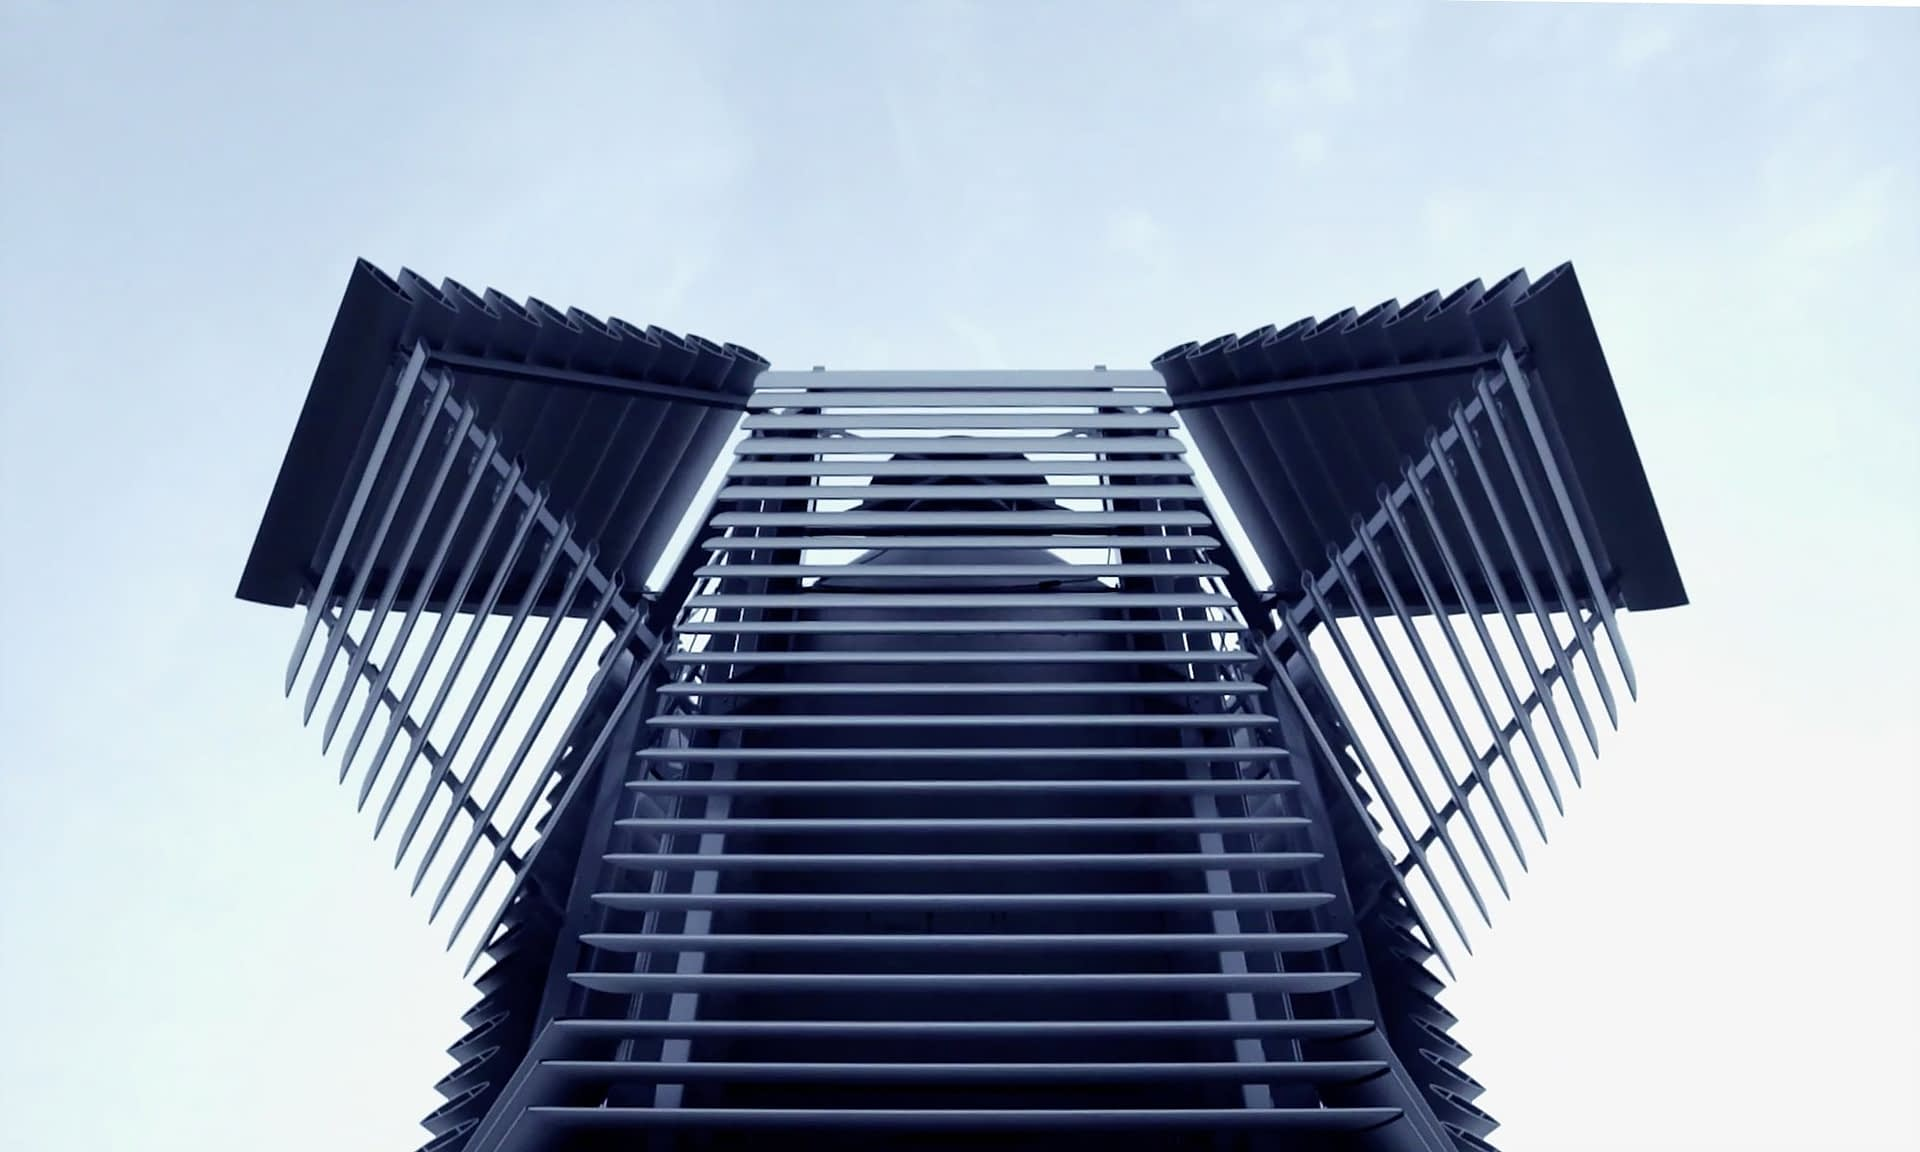 , The ULTIMATE in recycling – This Tower Sucks Up Smog and Turns It Into Diamonds, TheCircularEconomy.com